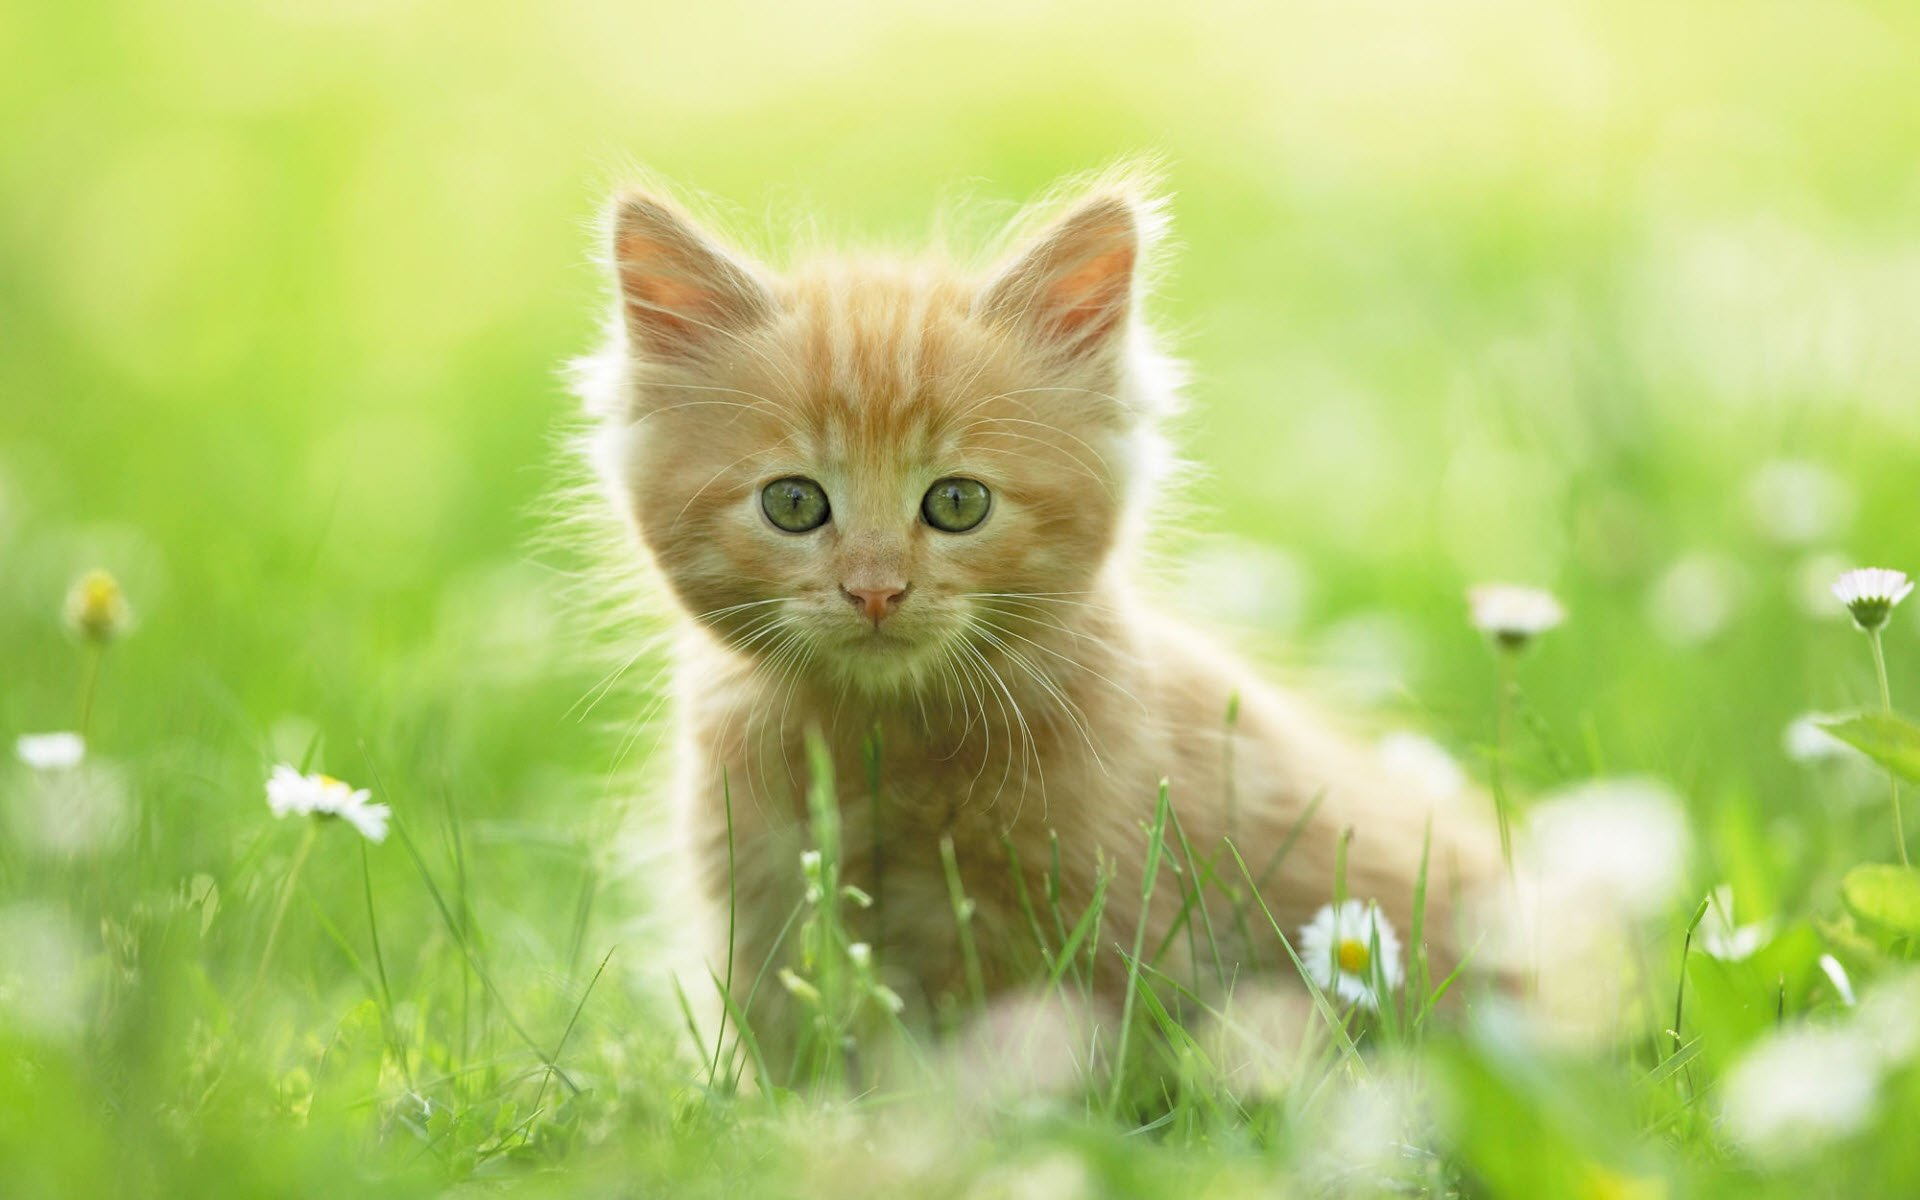 wallpaper Baby Kitten Wallpaper hd wallpaper background desktop 1920x1200